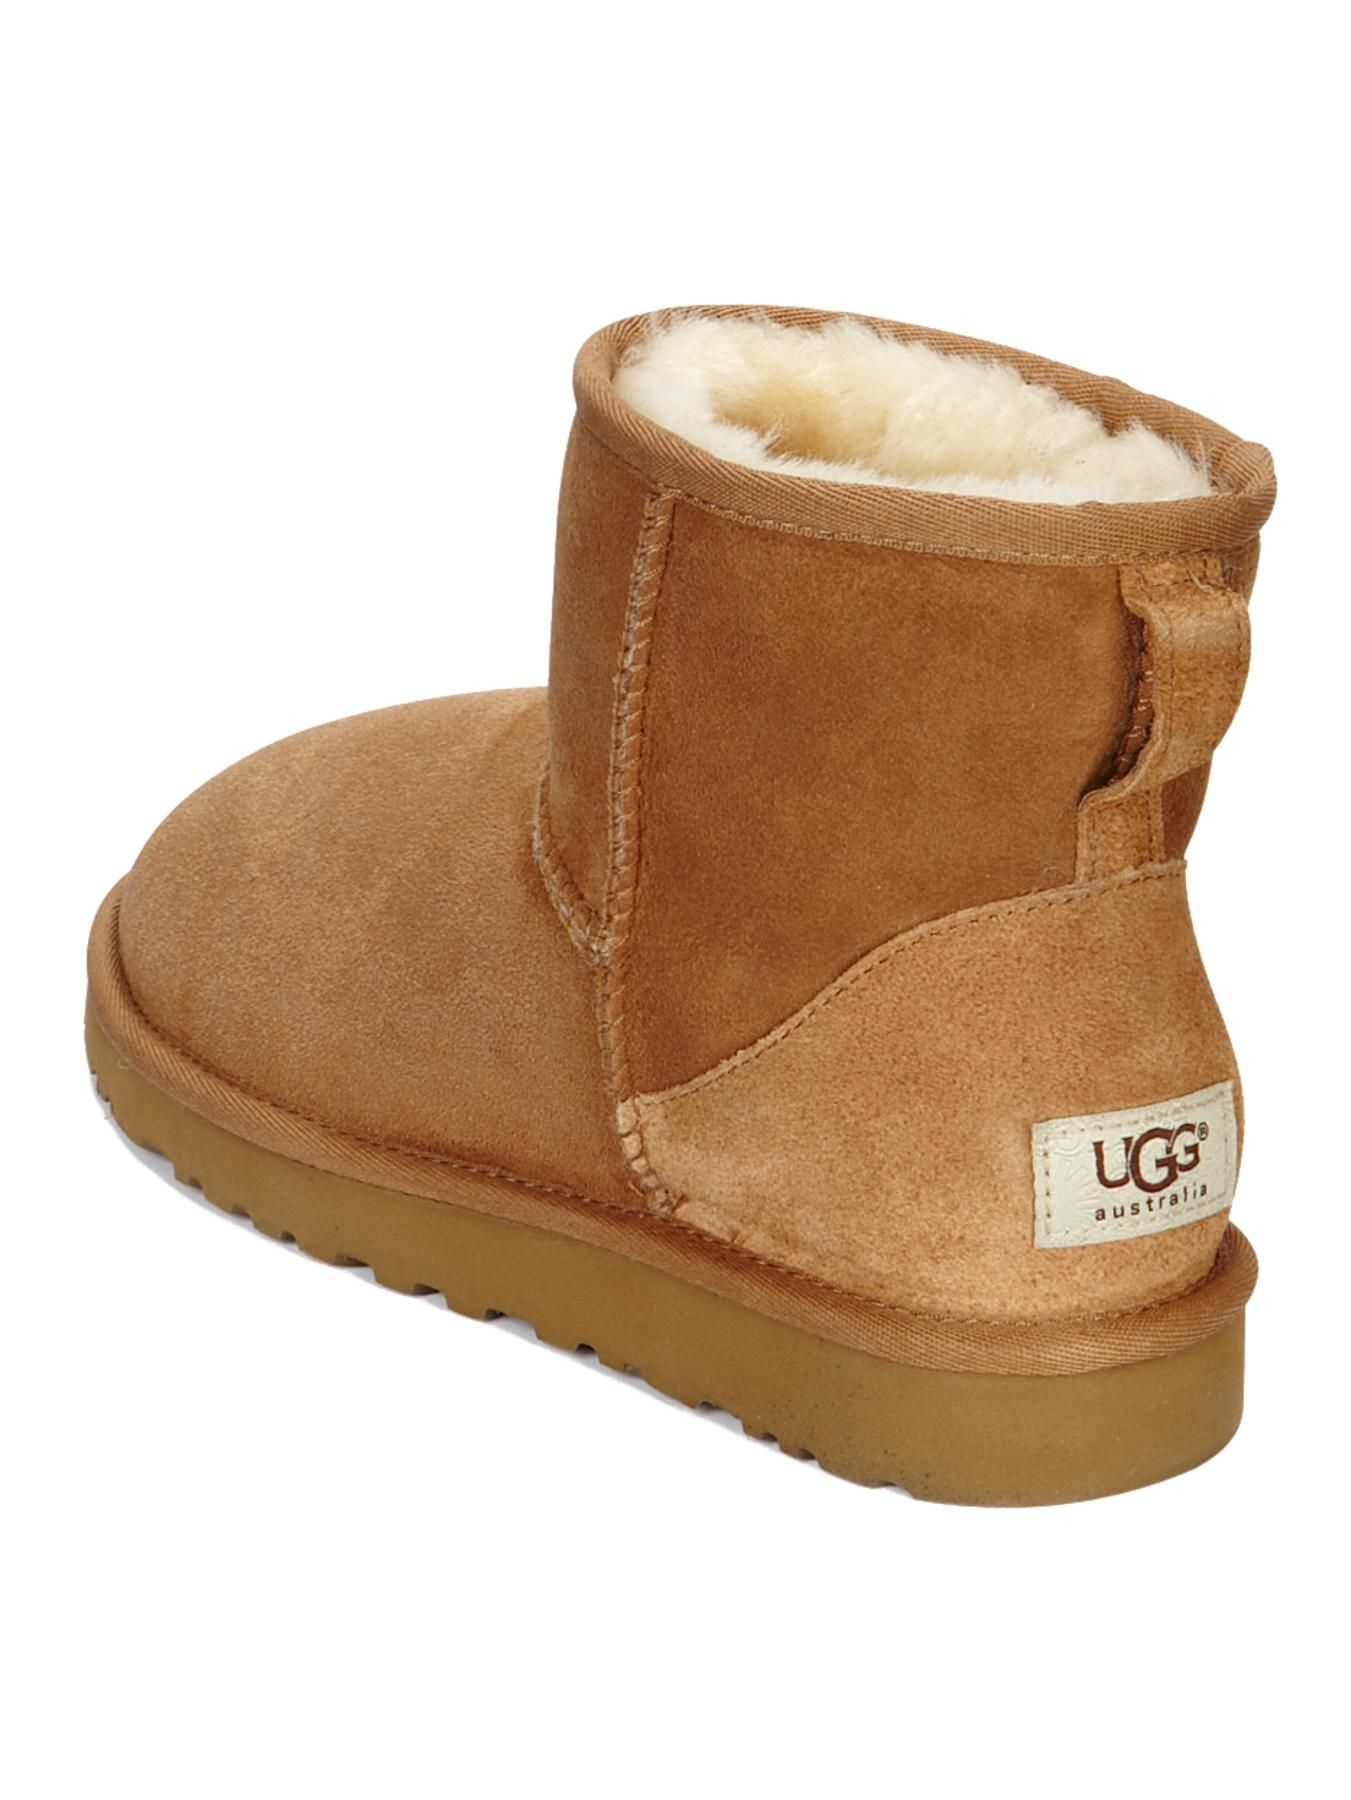 Account Suspended | Ugg boots, Boots